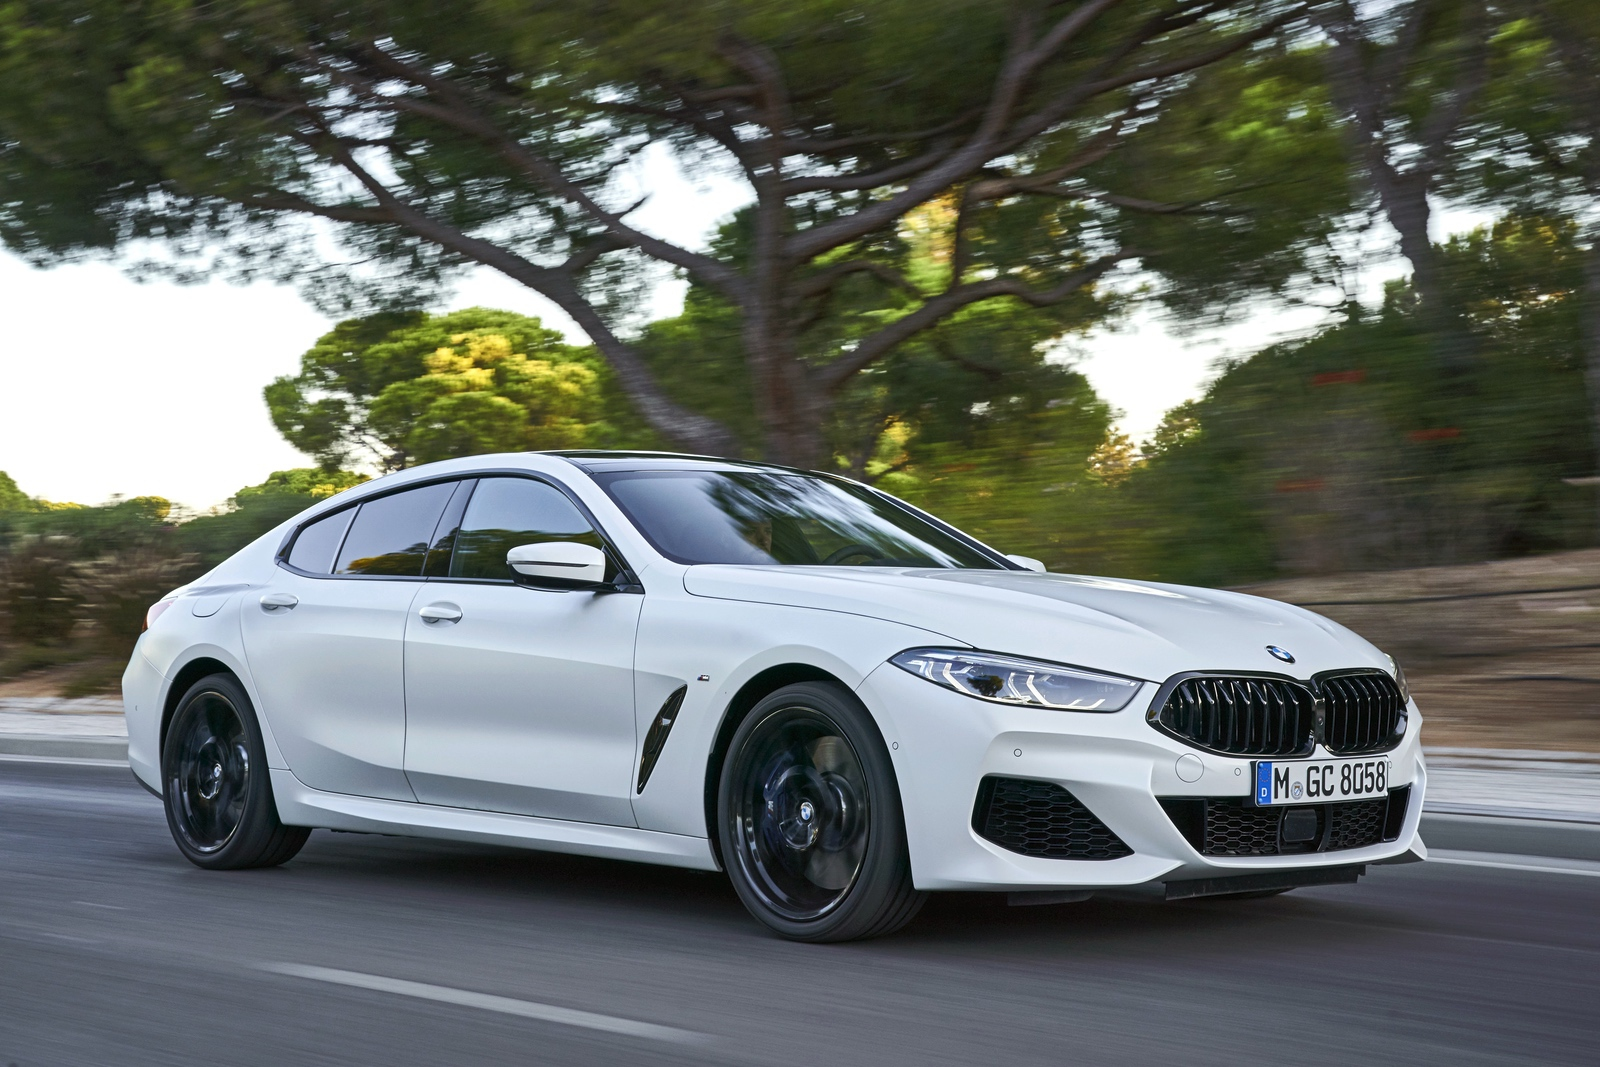 2020 BMW 8 Series Gran Coupe mineral white 67